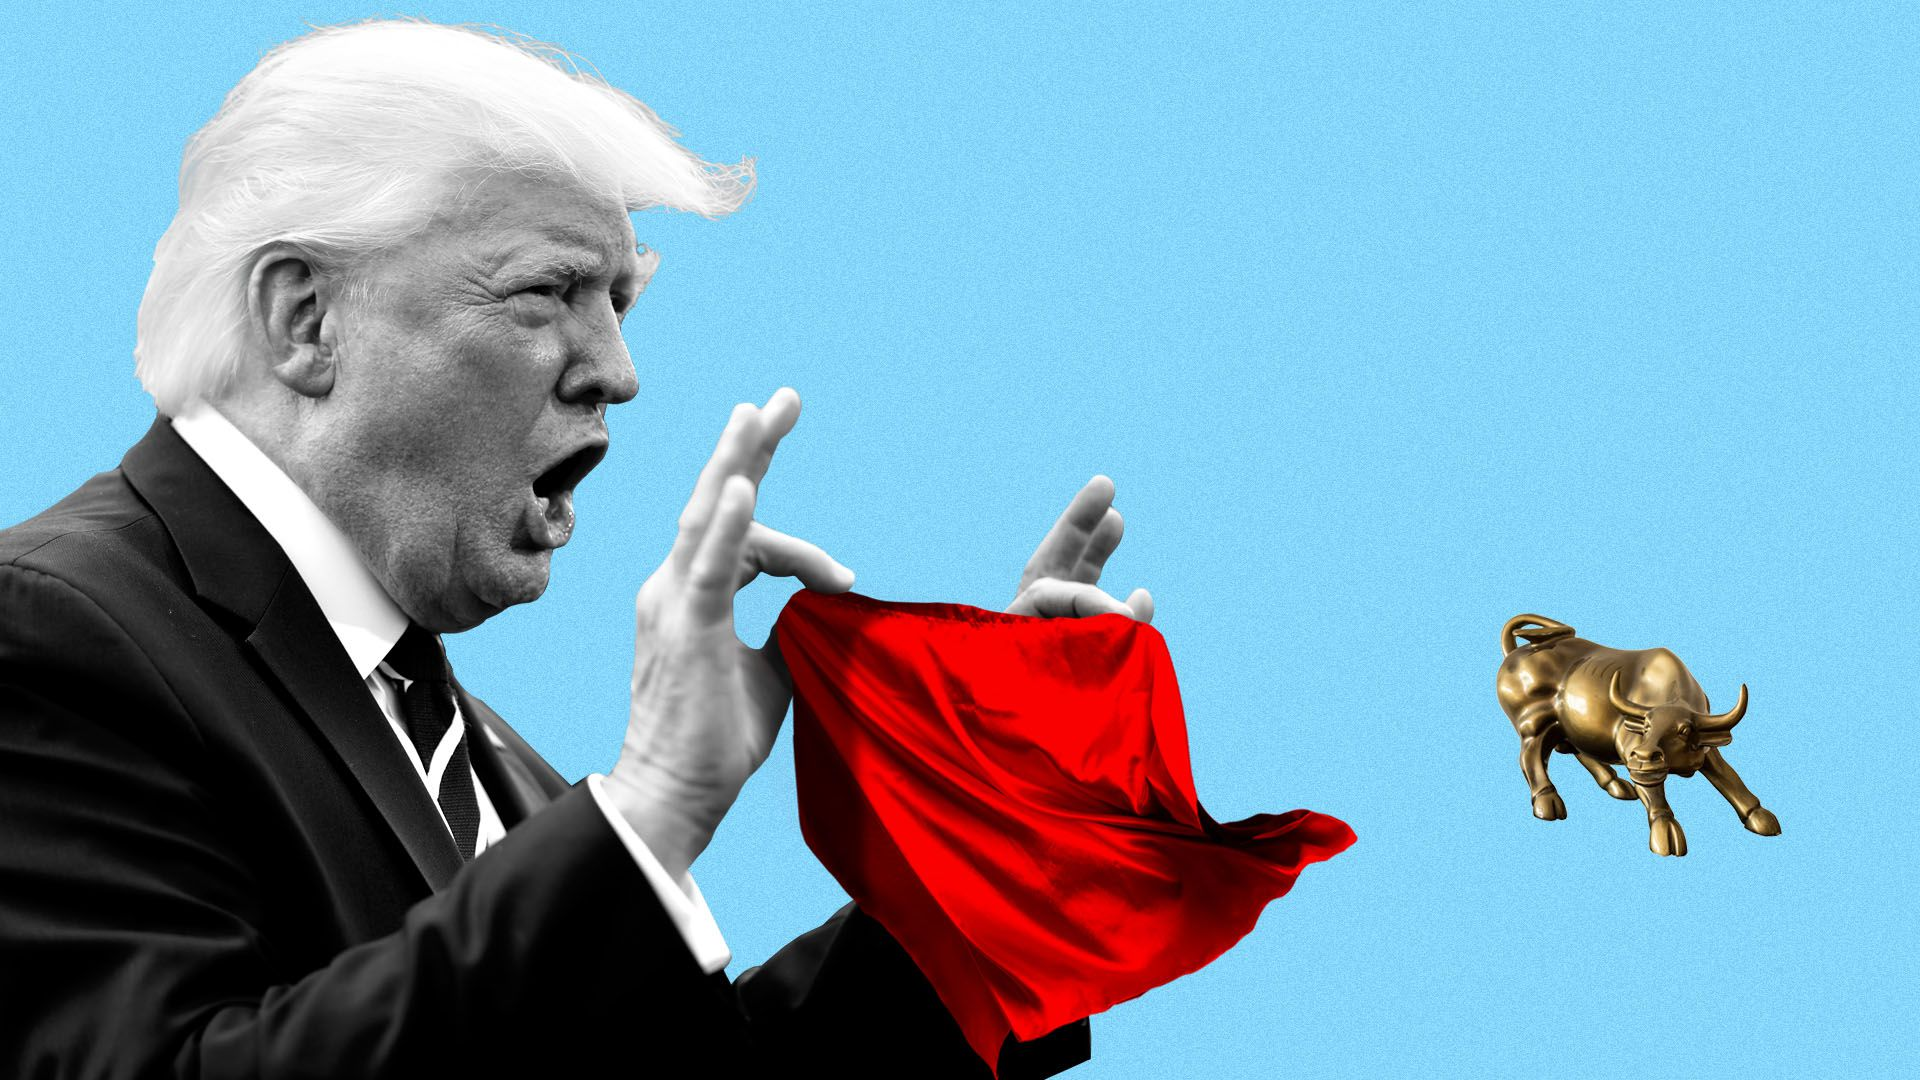 Illustration of President Trump provoking a Wall Street bull with a bullfighter's red muleta.